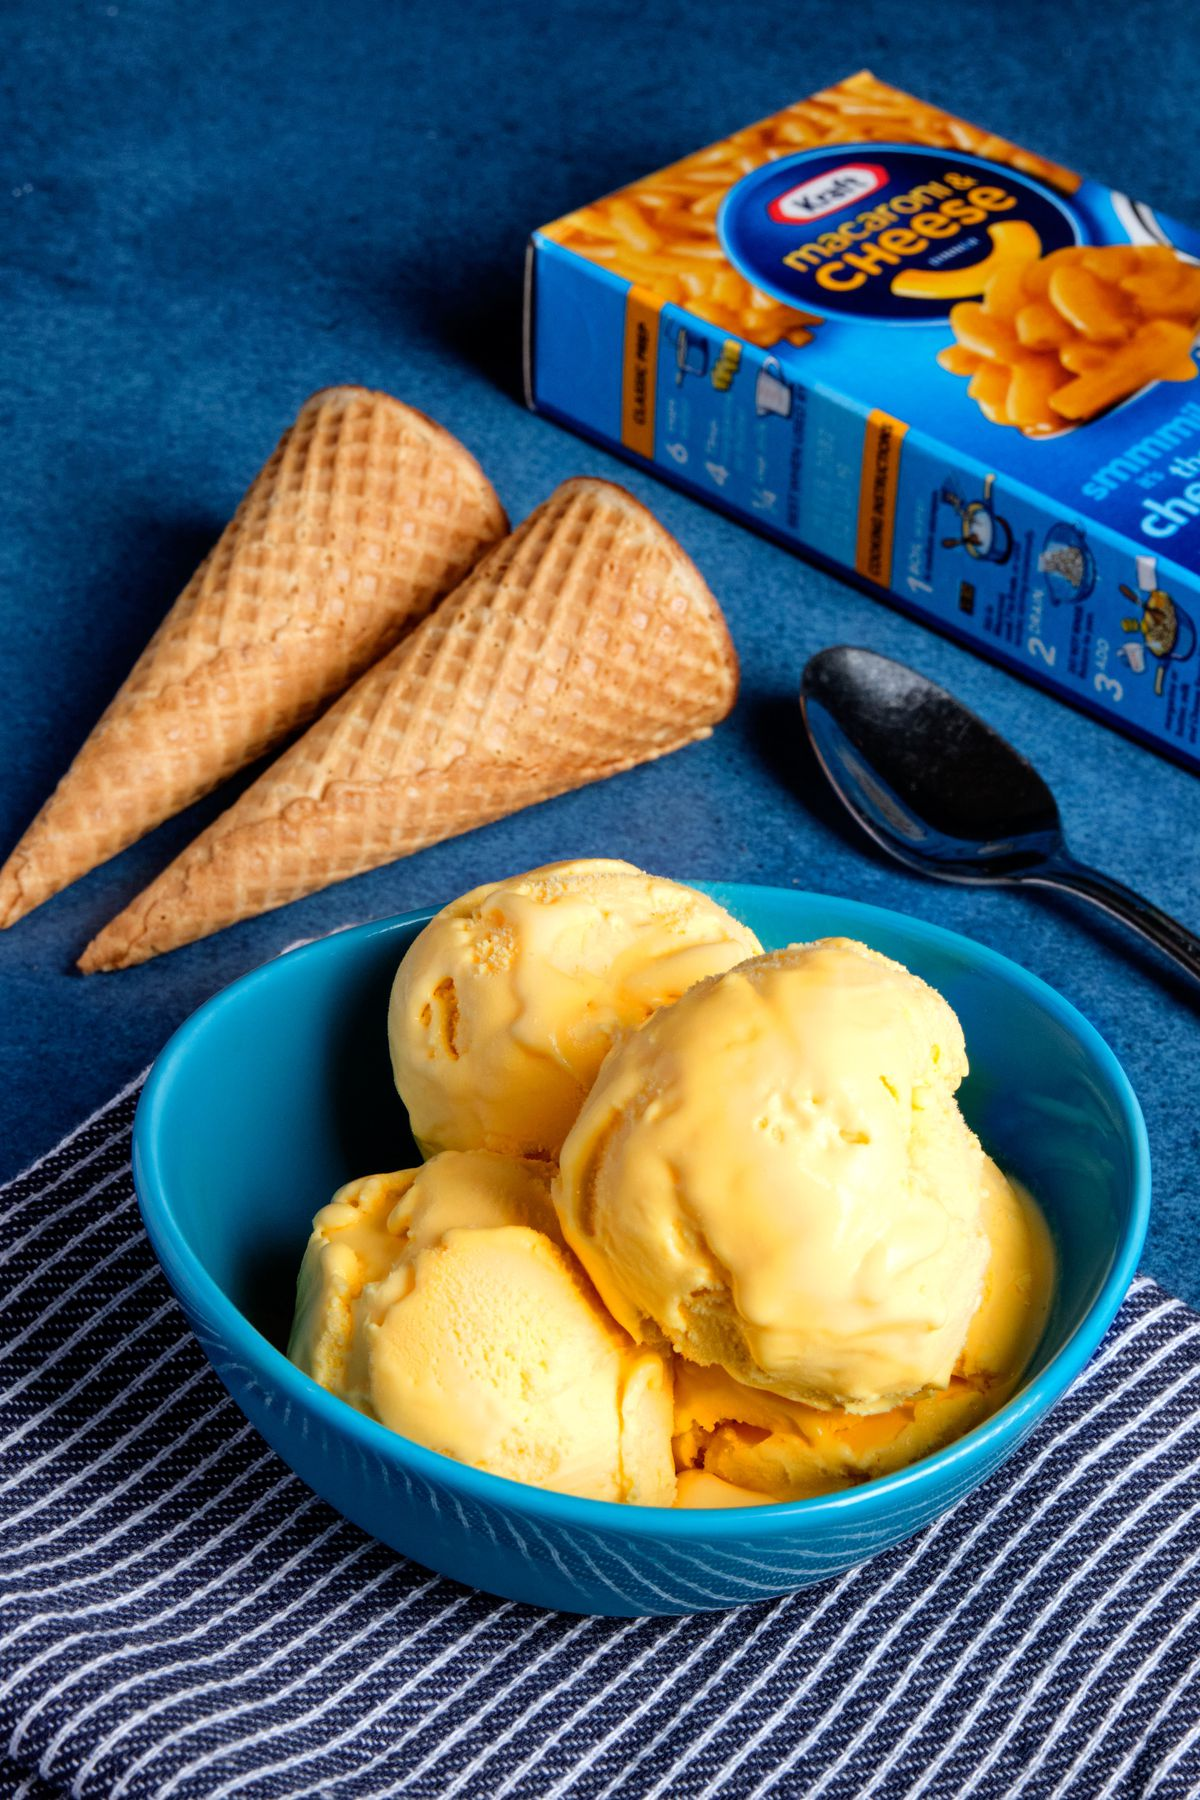 Three scoops of mac and cheese flavored ice cream in a bowl next to a box of Kraft Mac and Cheese, an ice cream scoop and two ice cream cones.